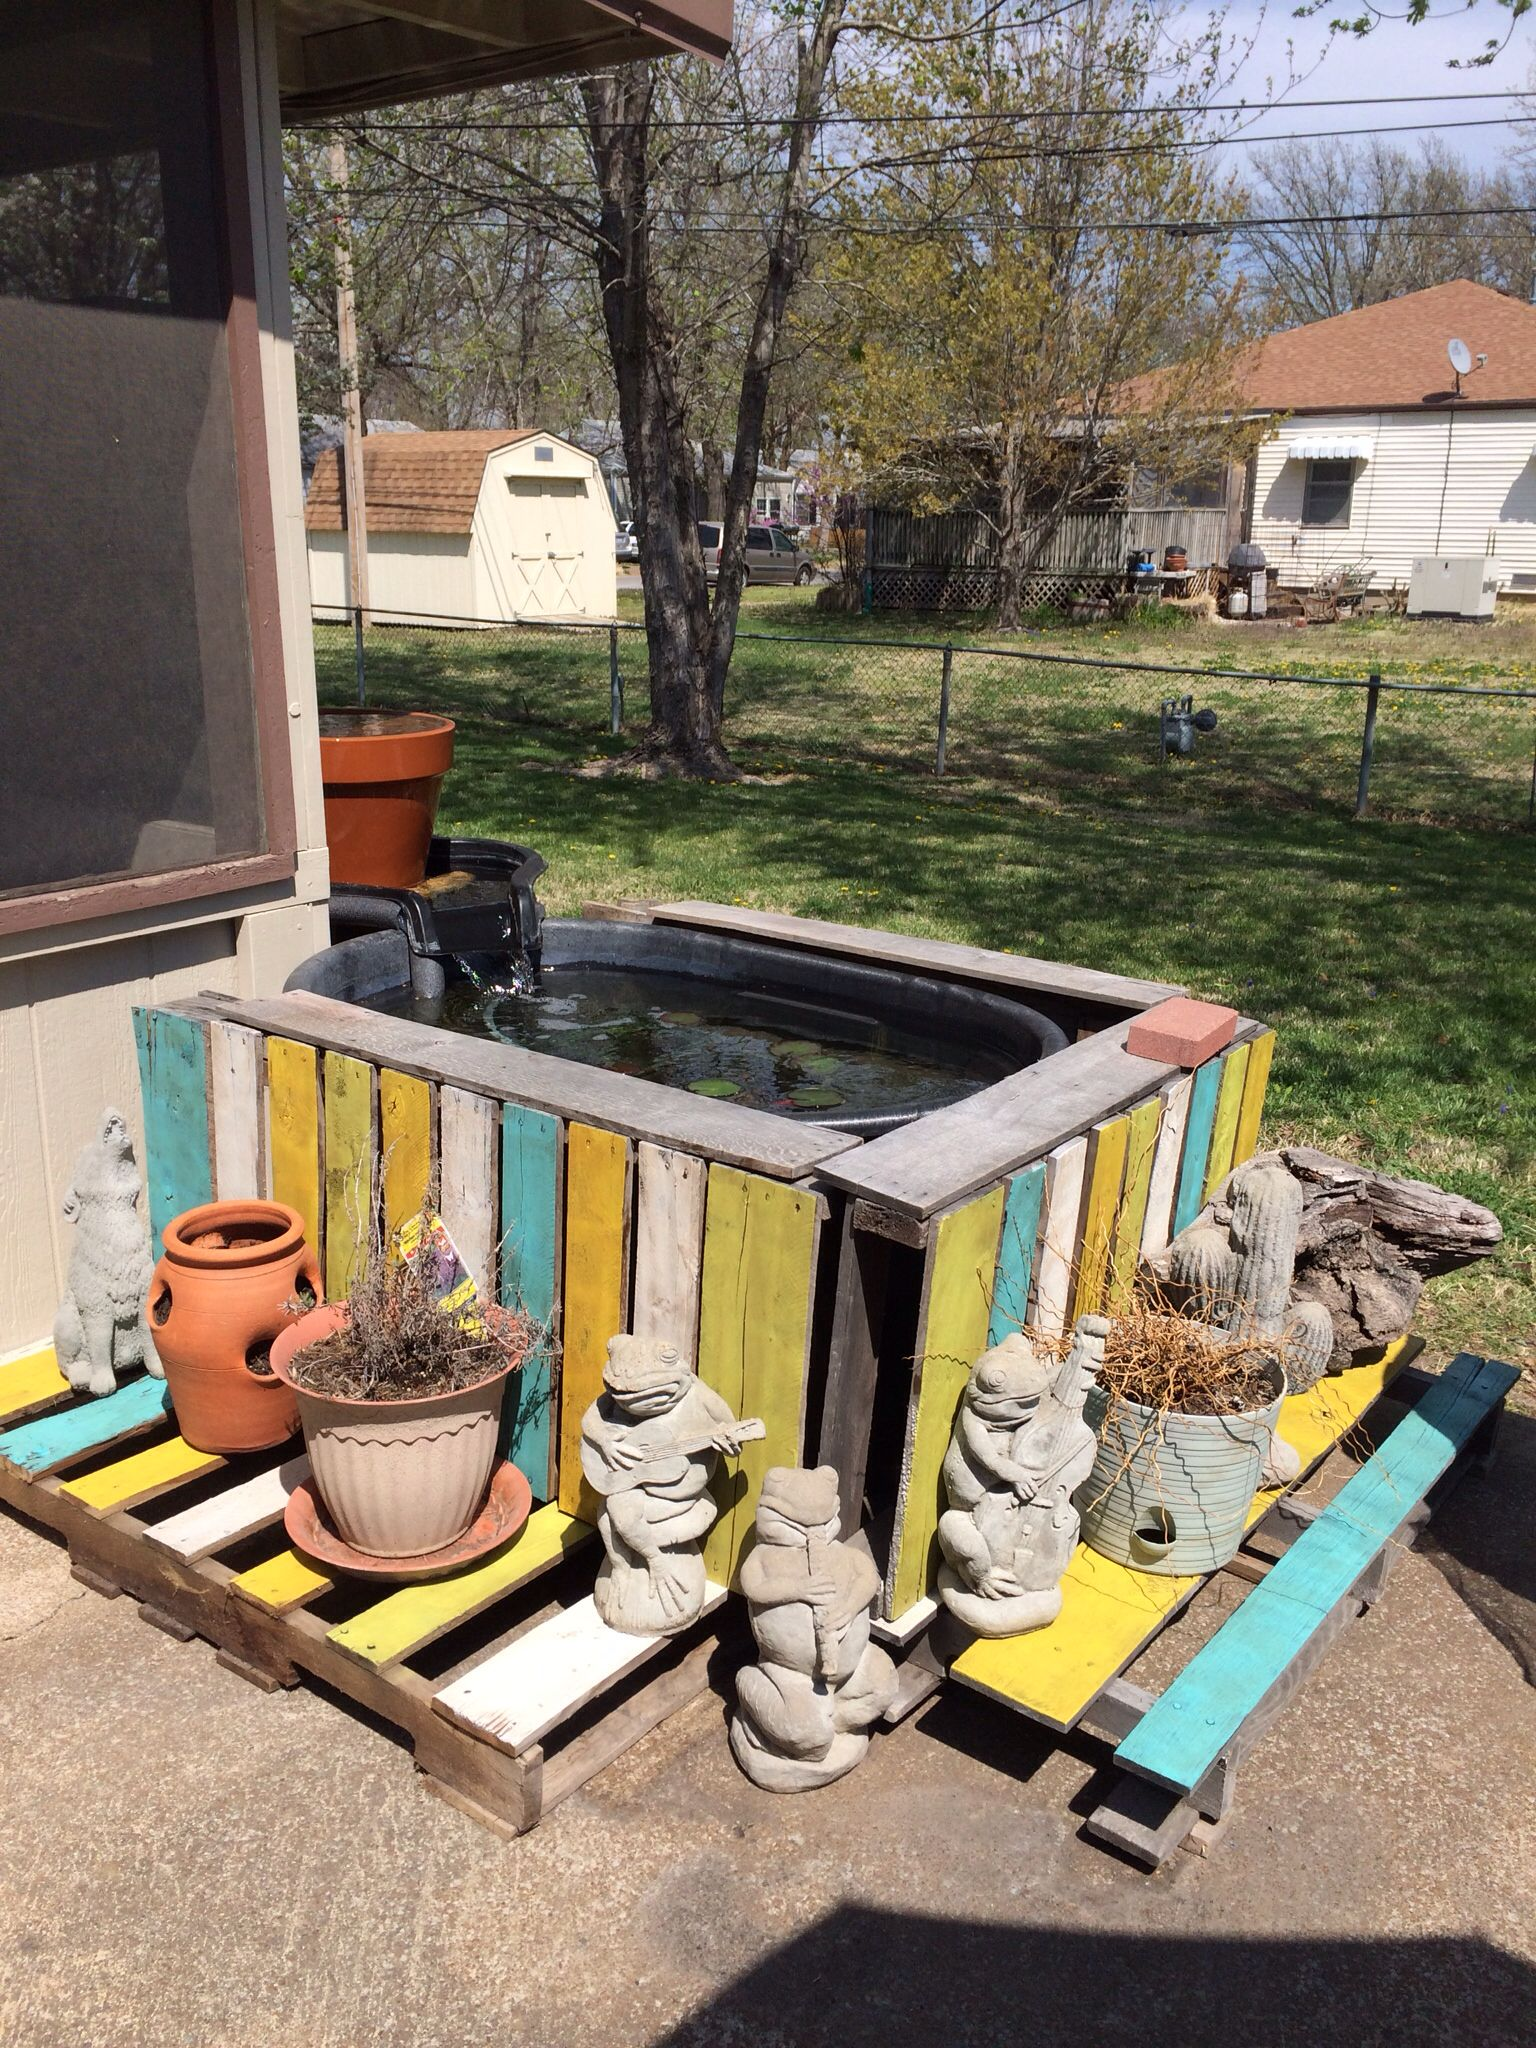 Mini Pool Aus Paletten Painted Pallets Around Pond My Crafty Days Pinterest